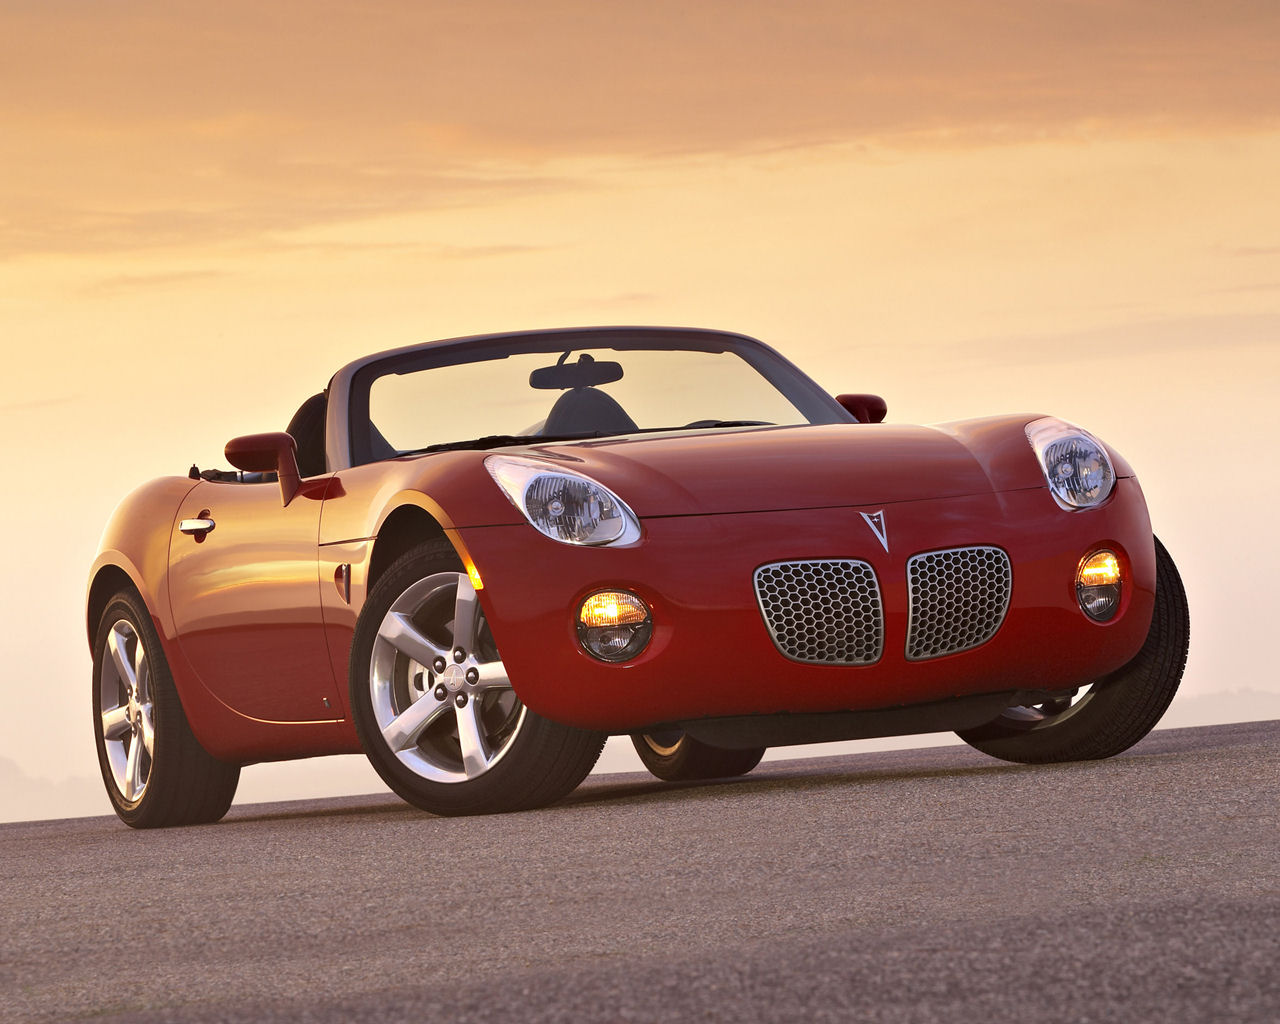 Pontiac Solstice Gxp Turbo Coupe Roadster Free